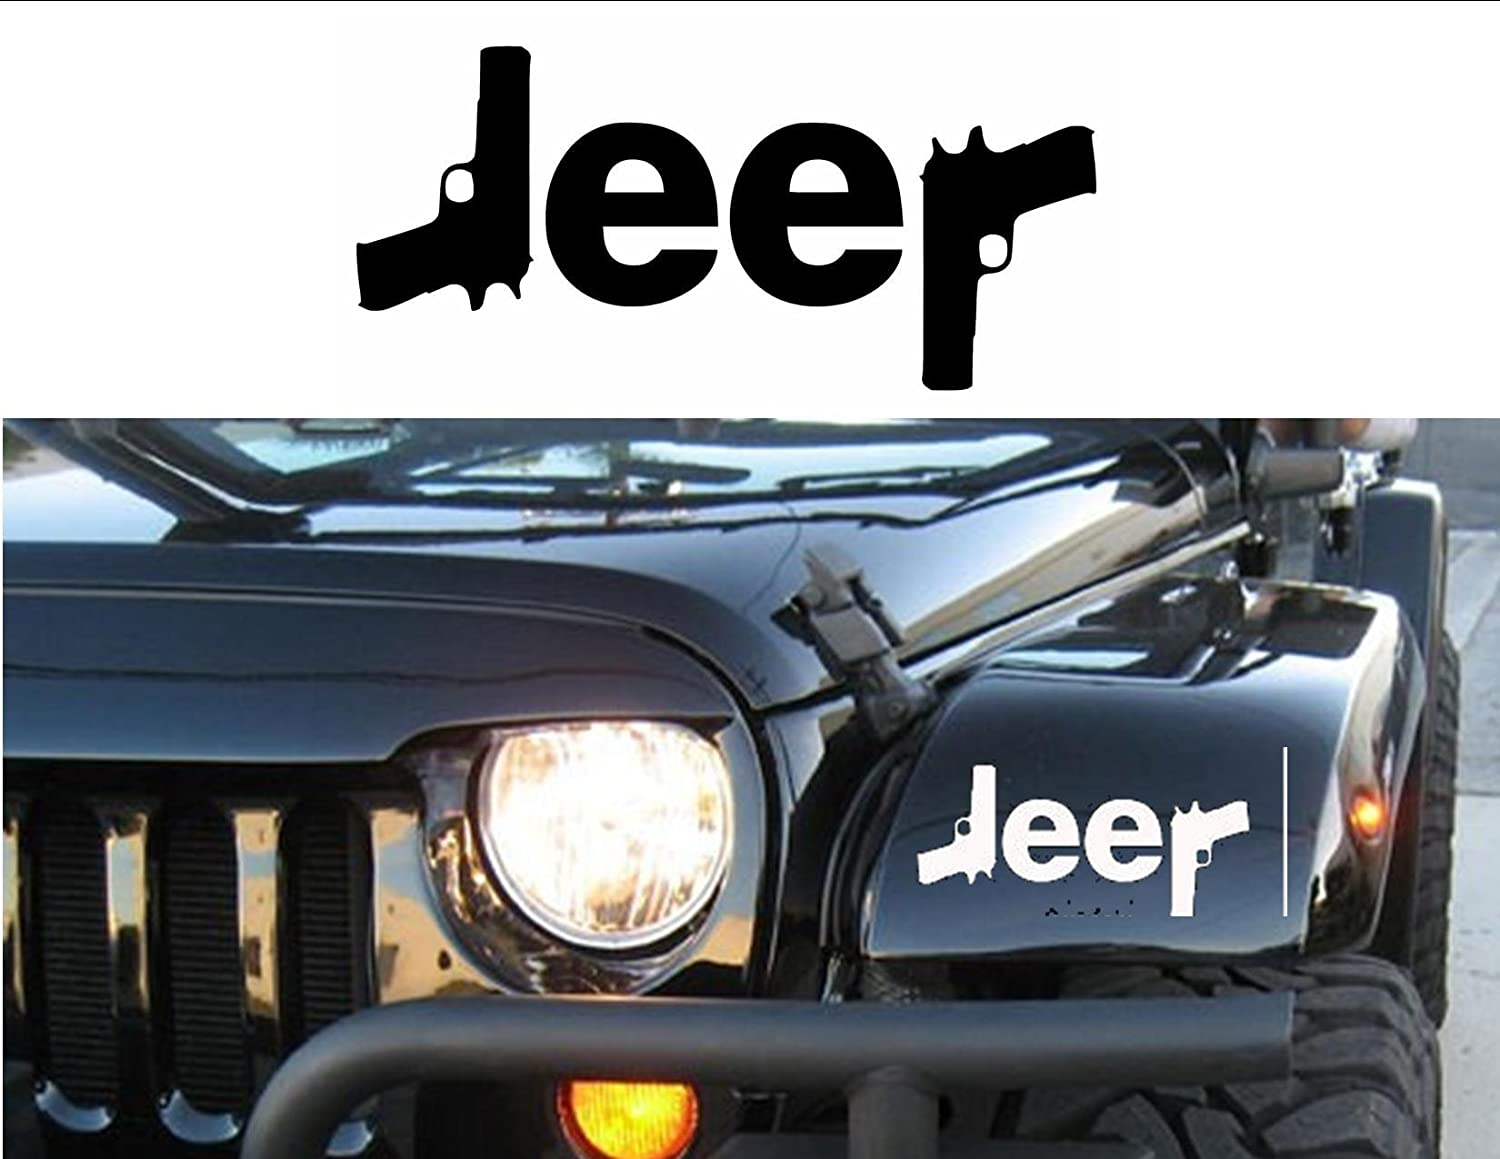 Jeep logo w guns white premium decal 5 inches sig glock wrangler rubicon cherokee sahara 4x4 offroad girl jeep car truck van laptop